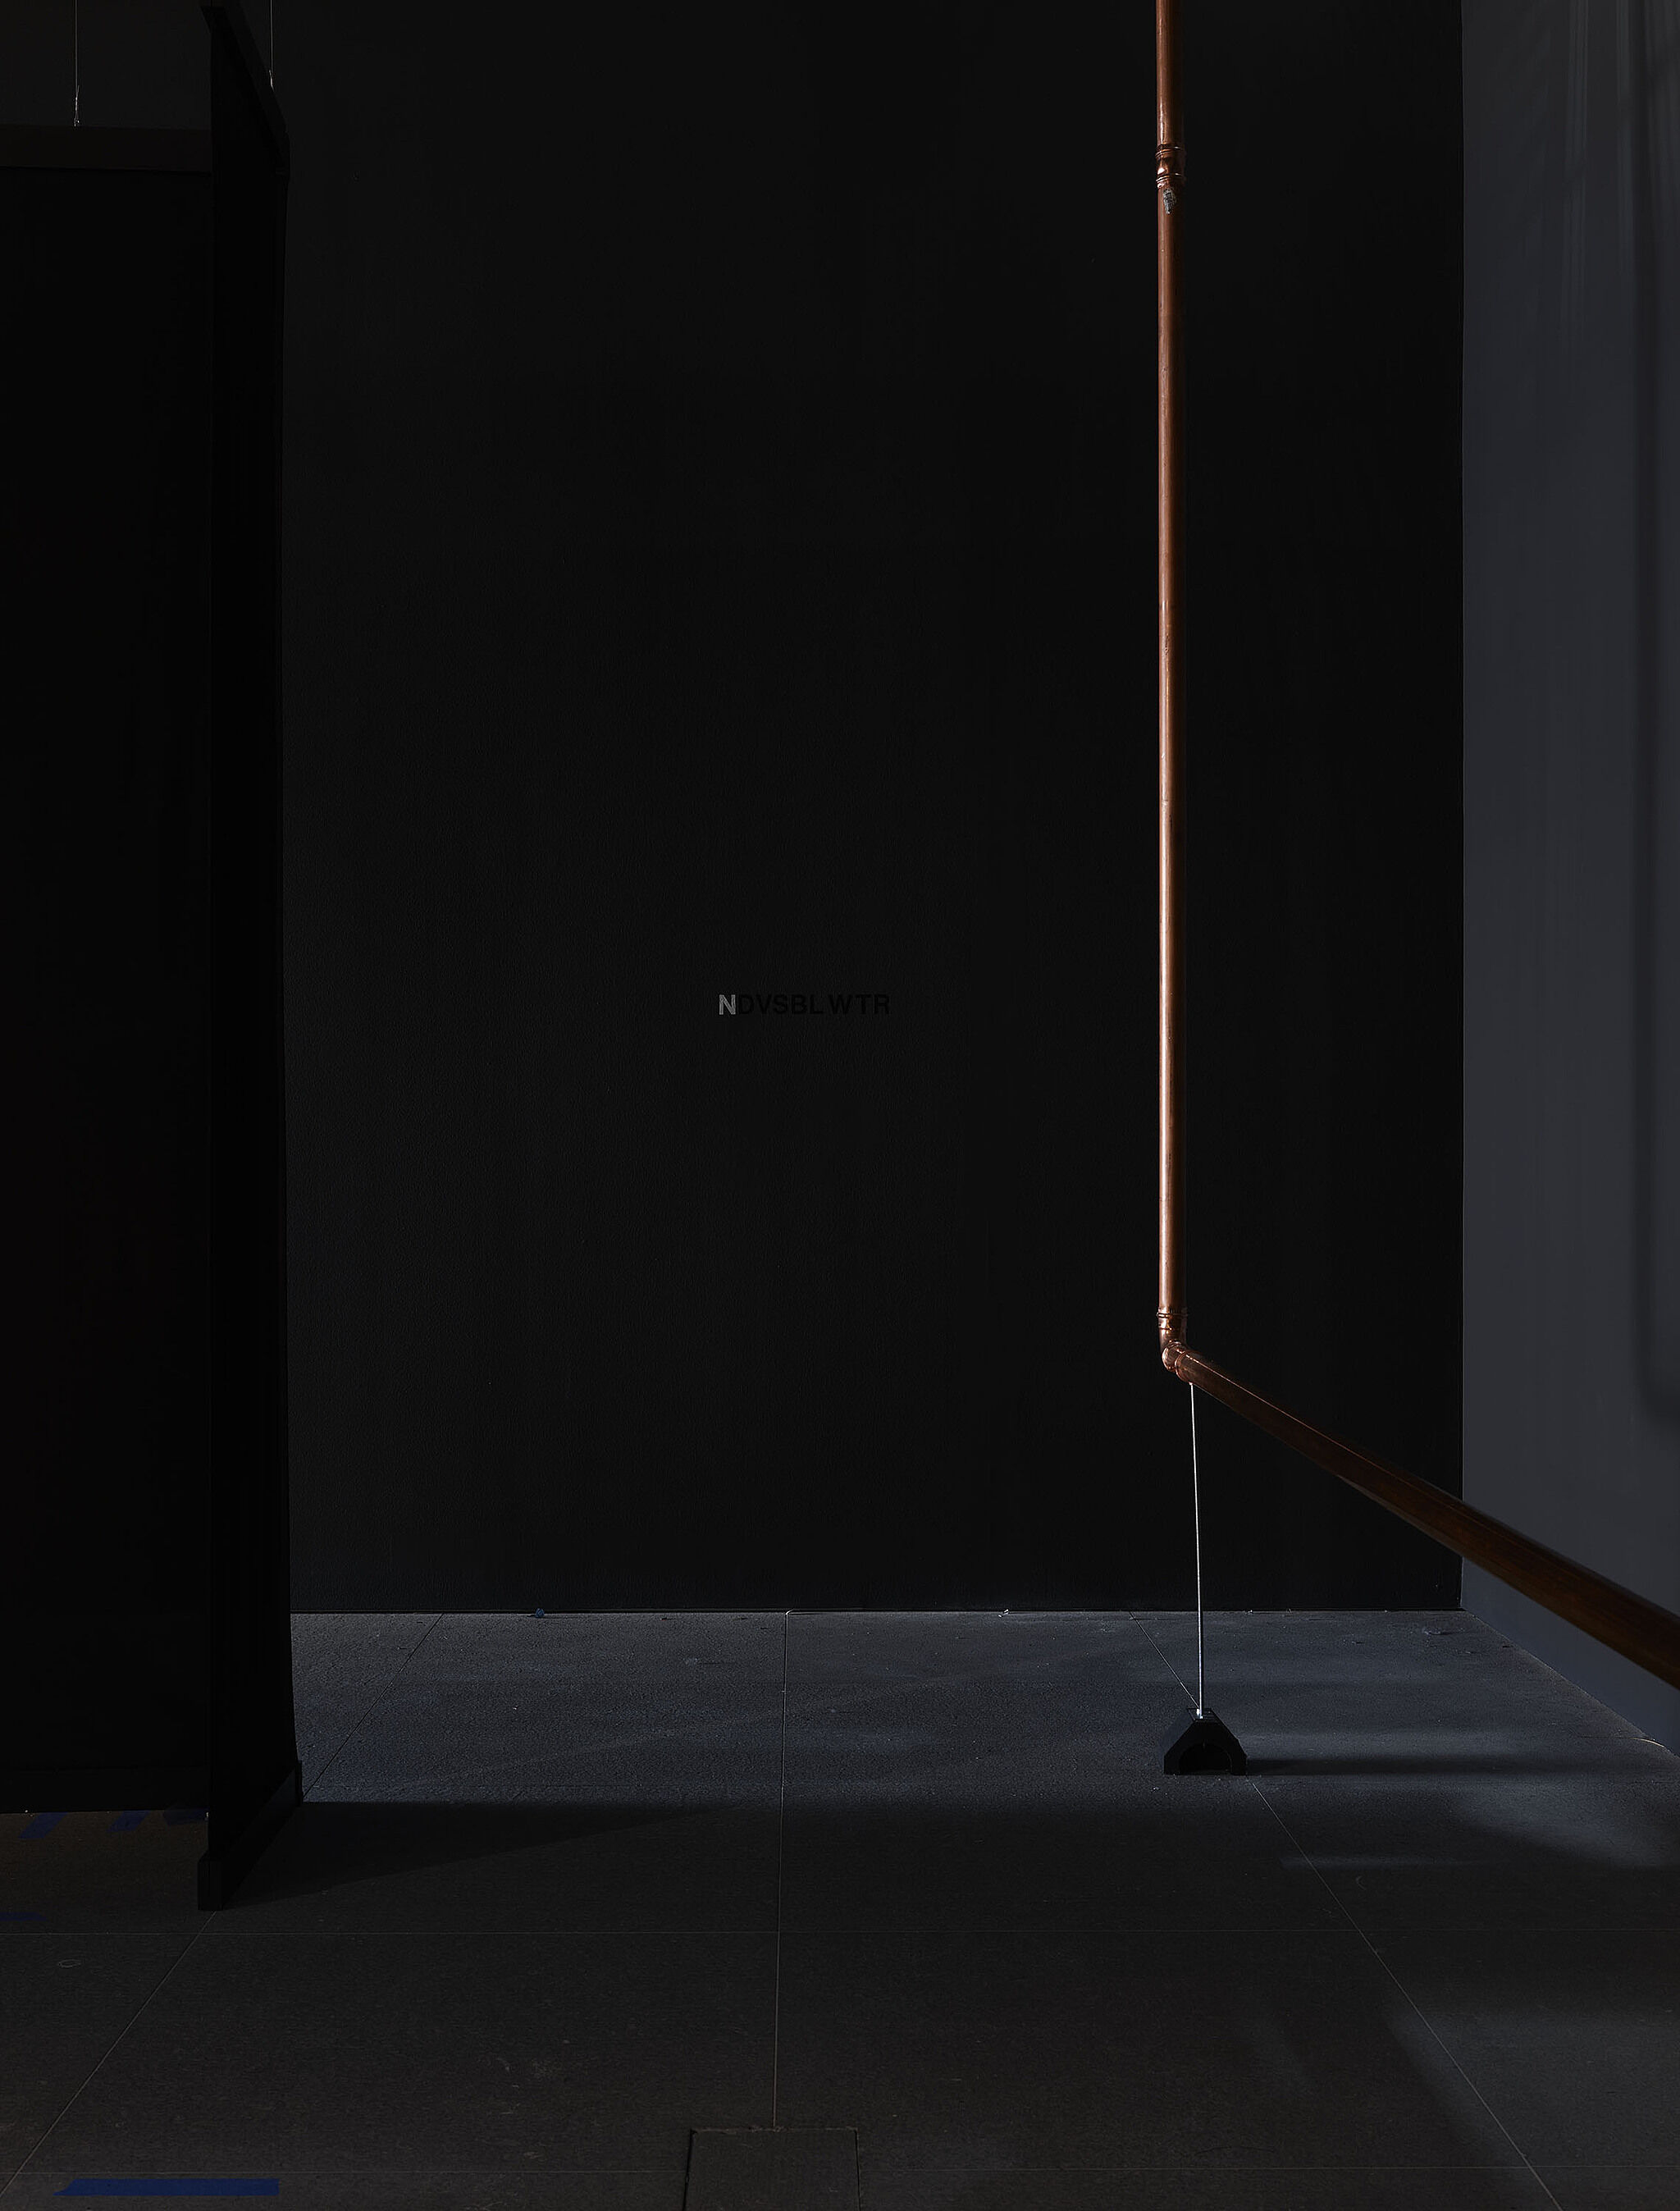 A copper pipe in a dark room.